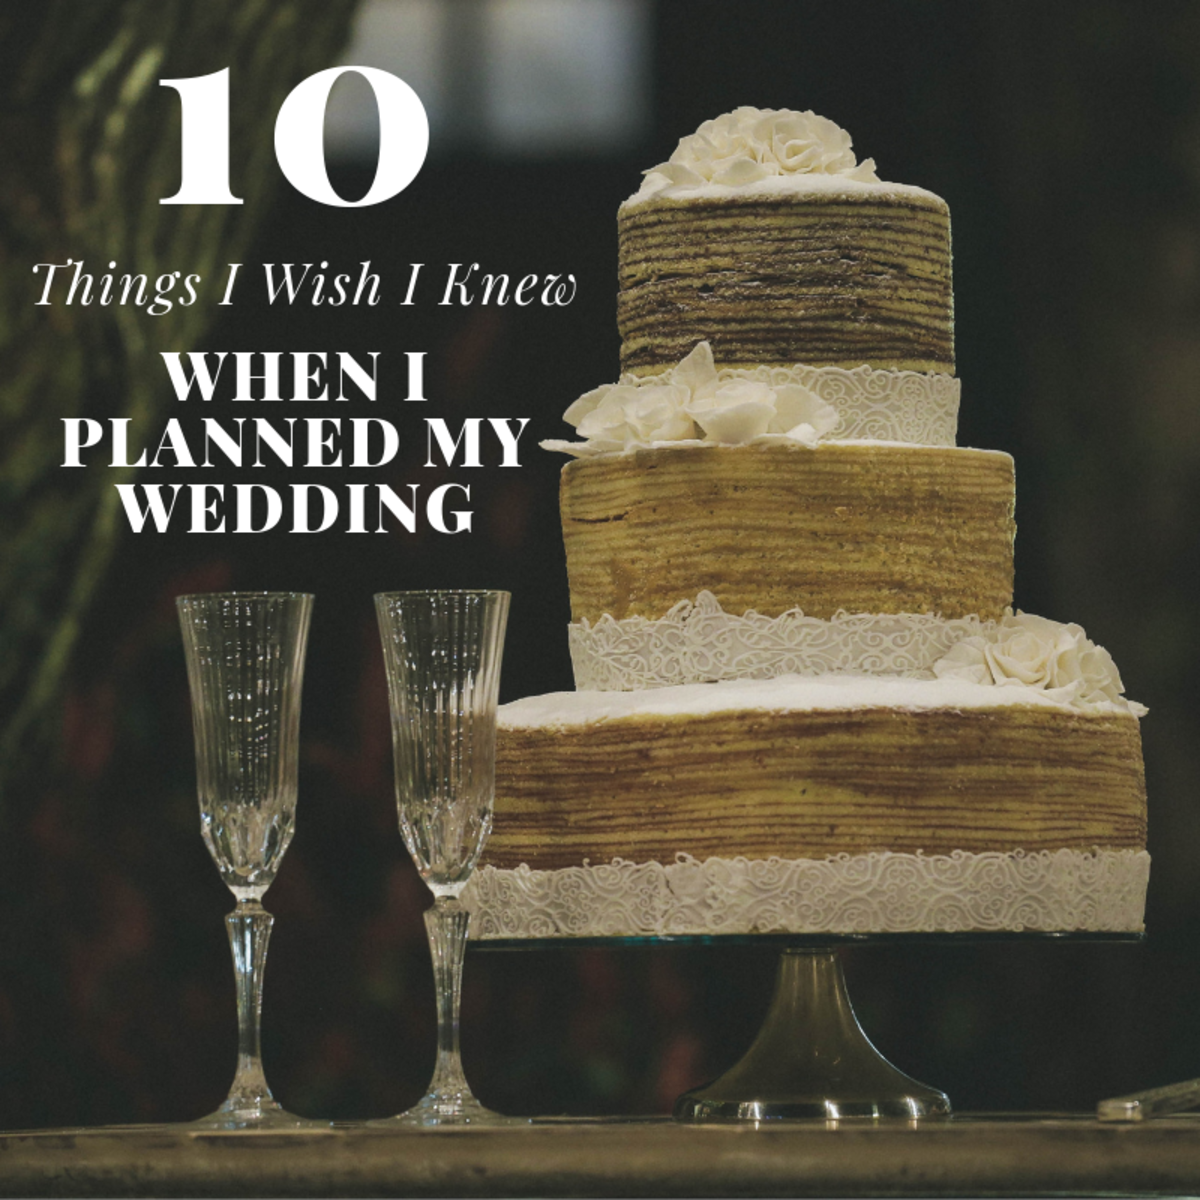 Here are 10 things I wish someone had told me when I was planning my wedding.